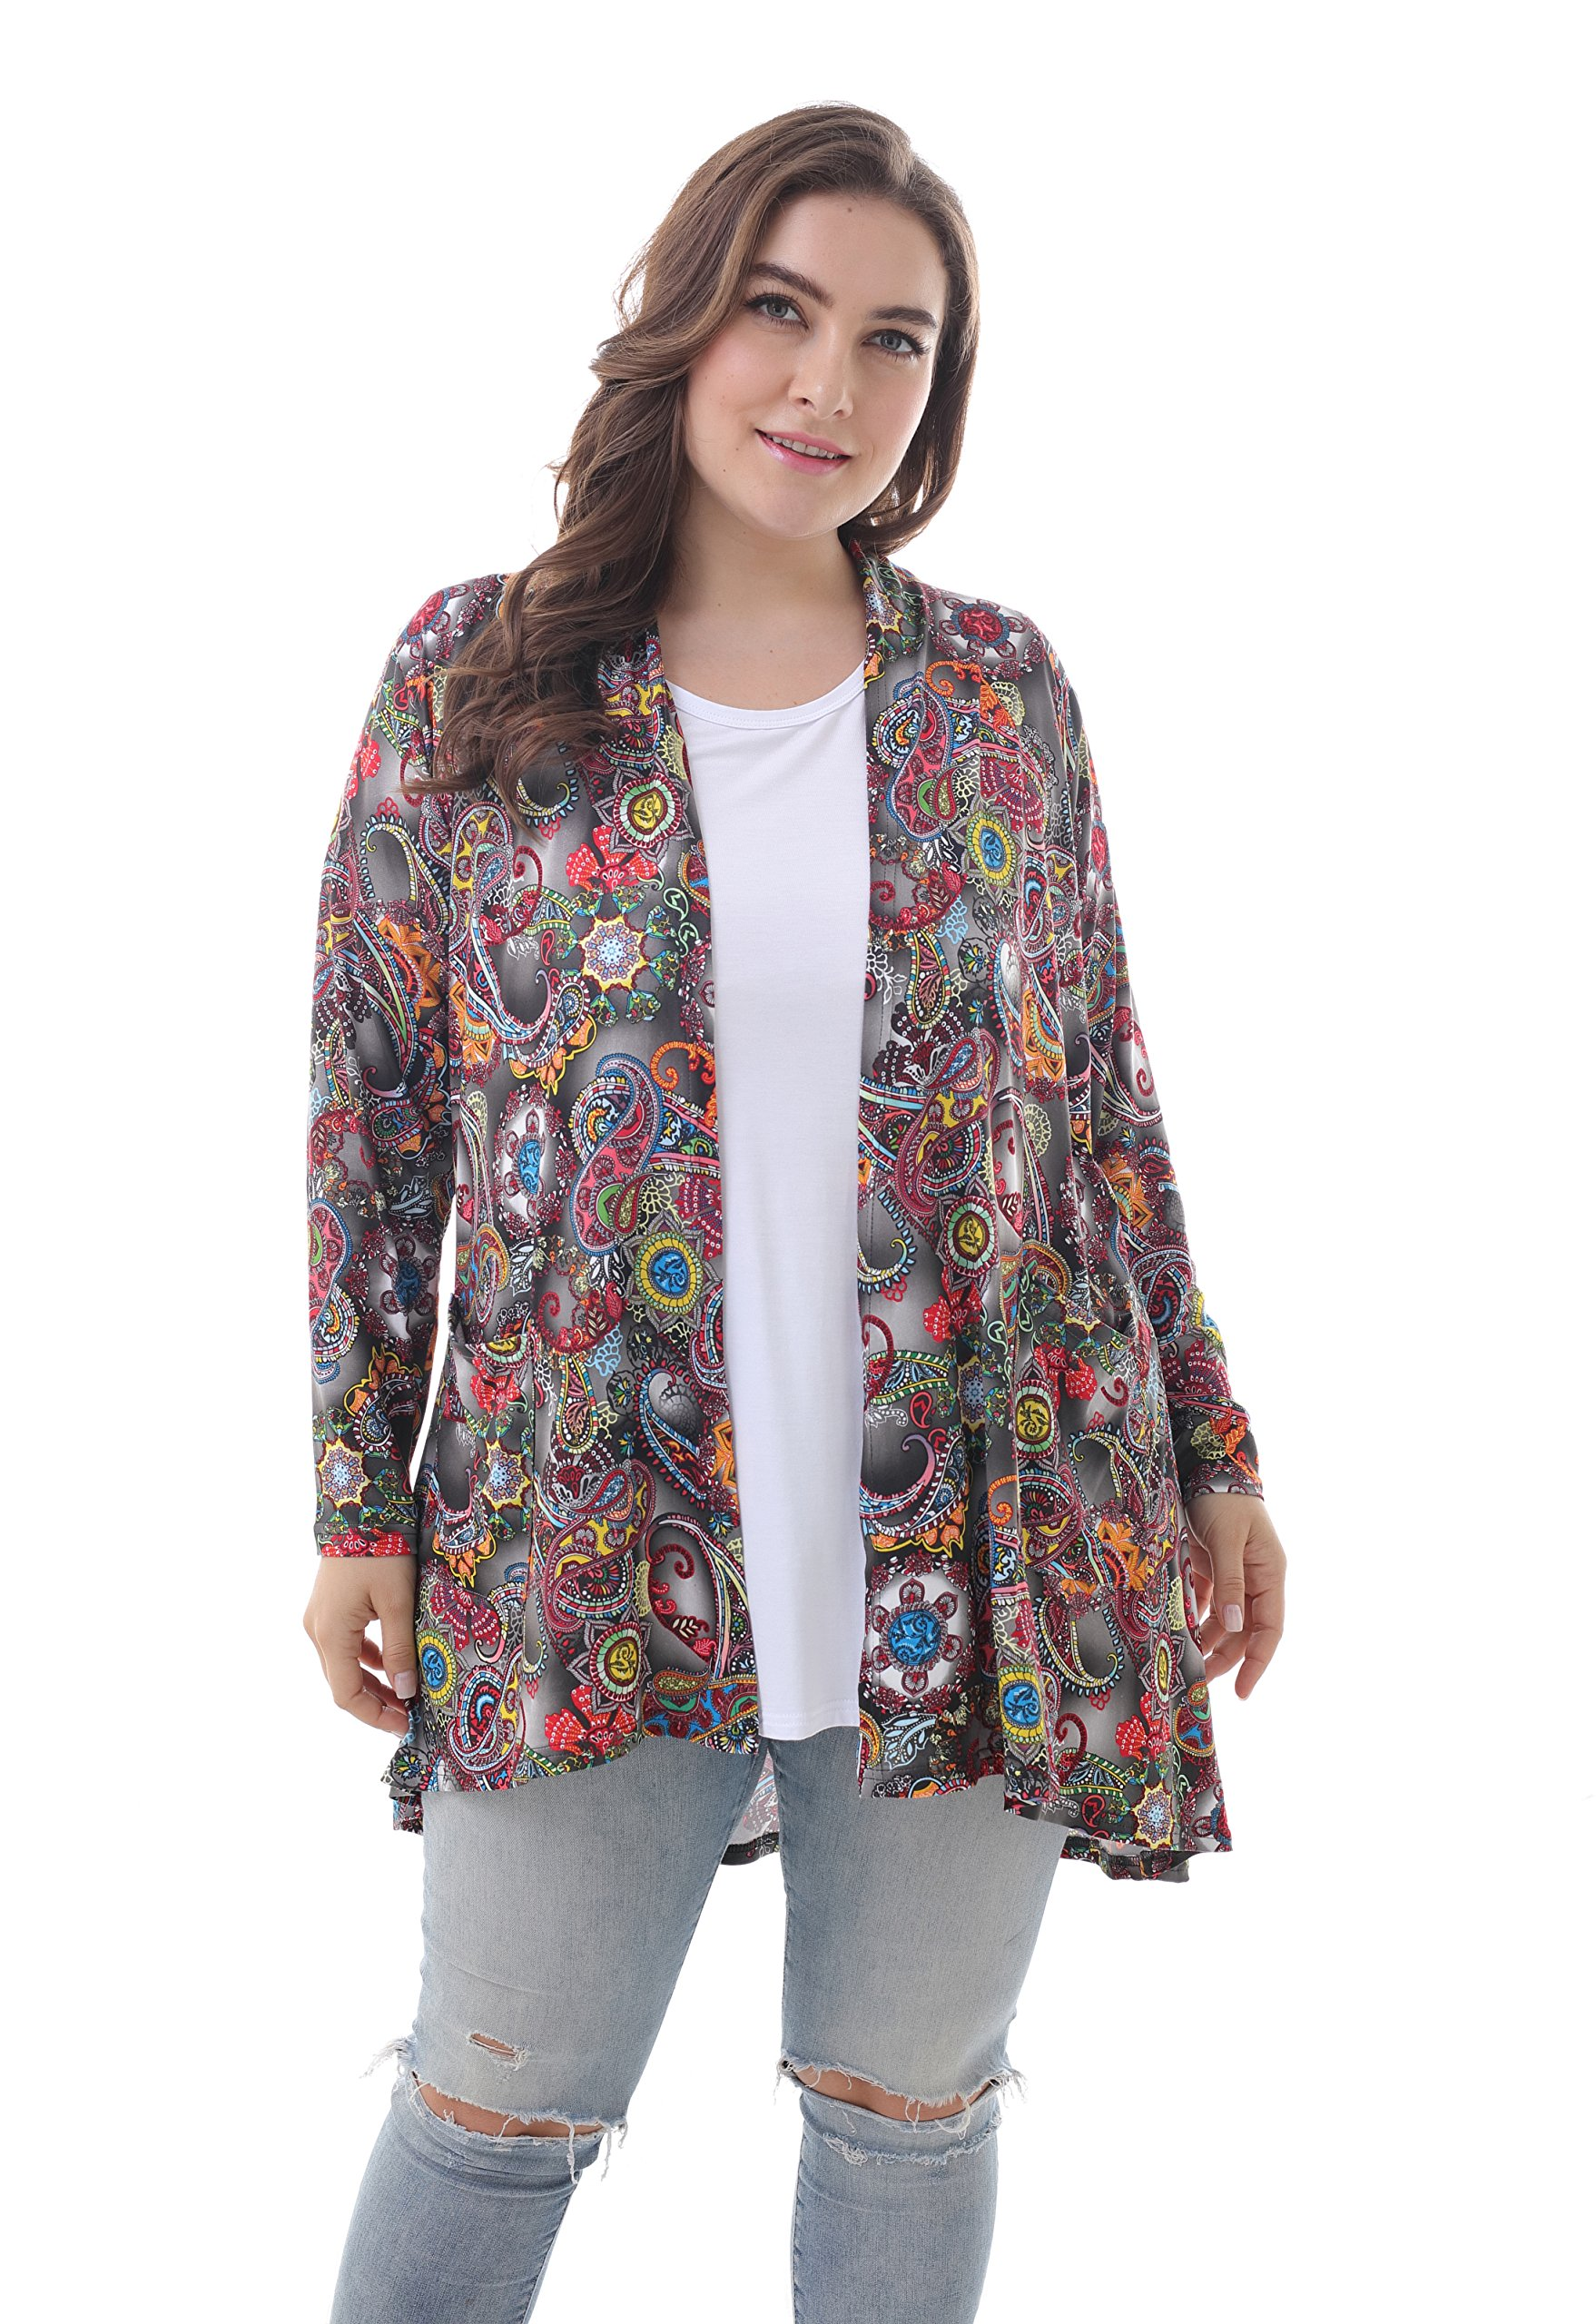 ZERDOCEAN Women's Plus Size Long Sleeve Lightweight Soft Printed Drape Cardigan with Pockets 102 2X